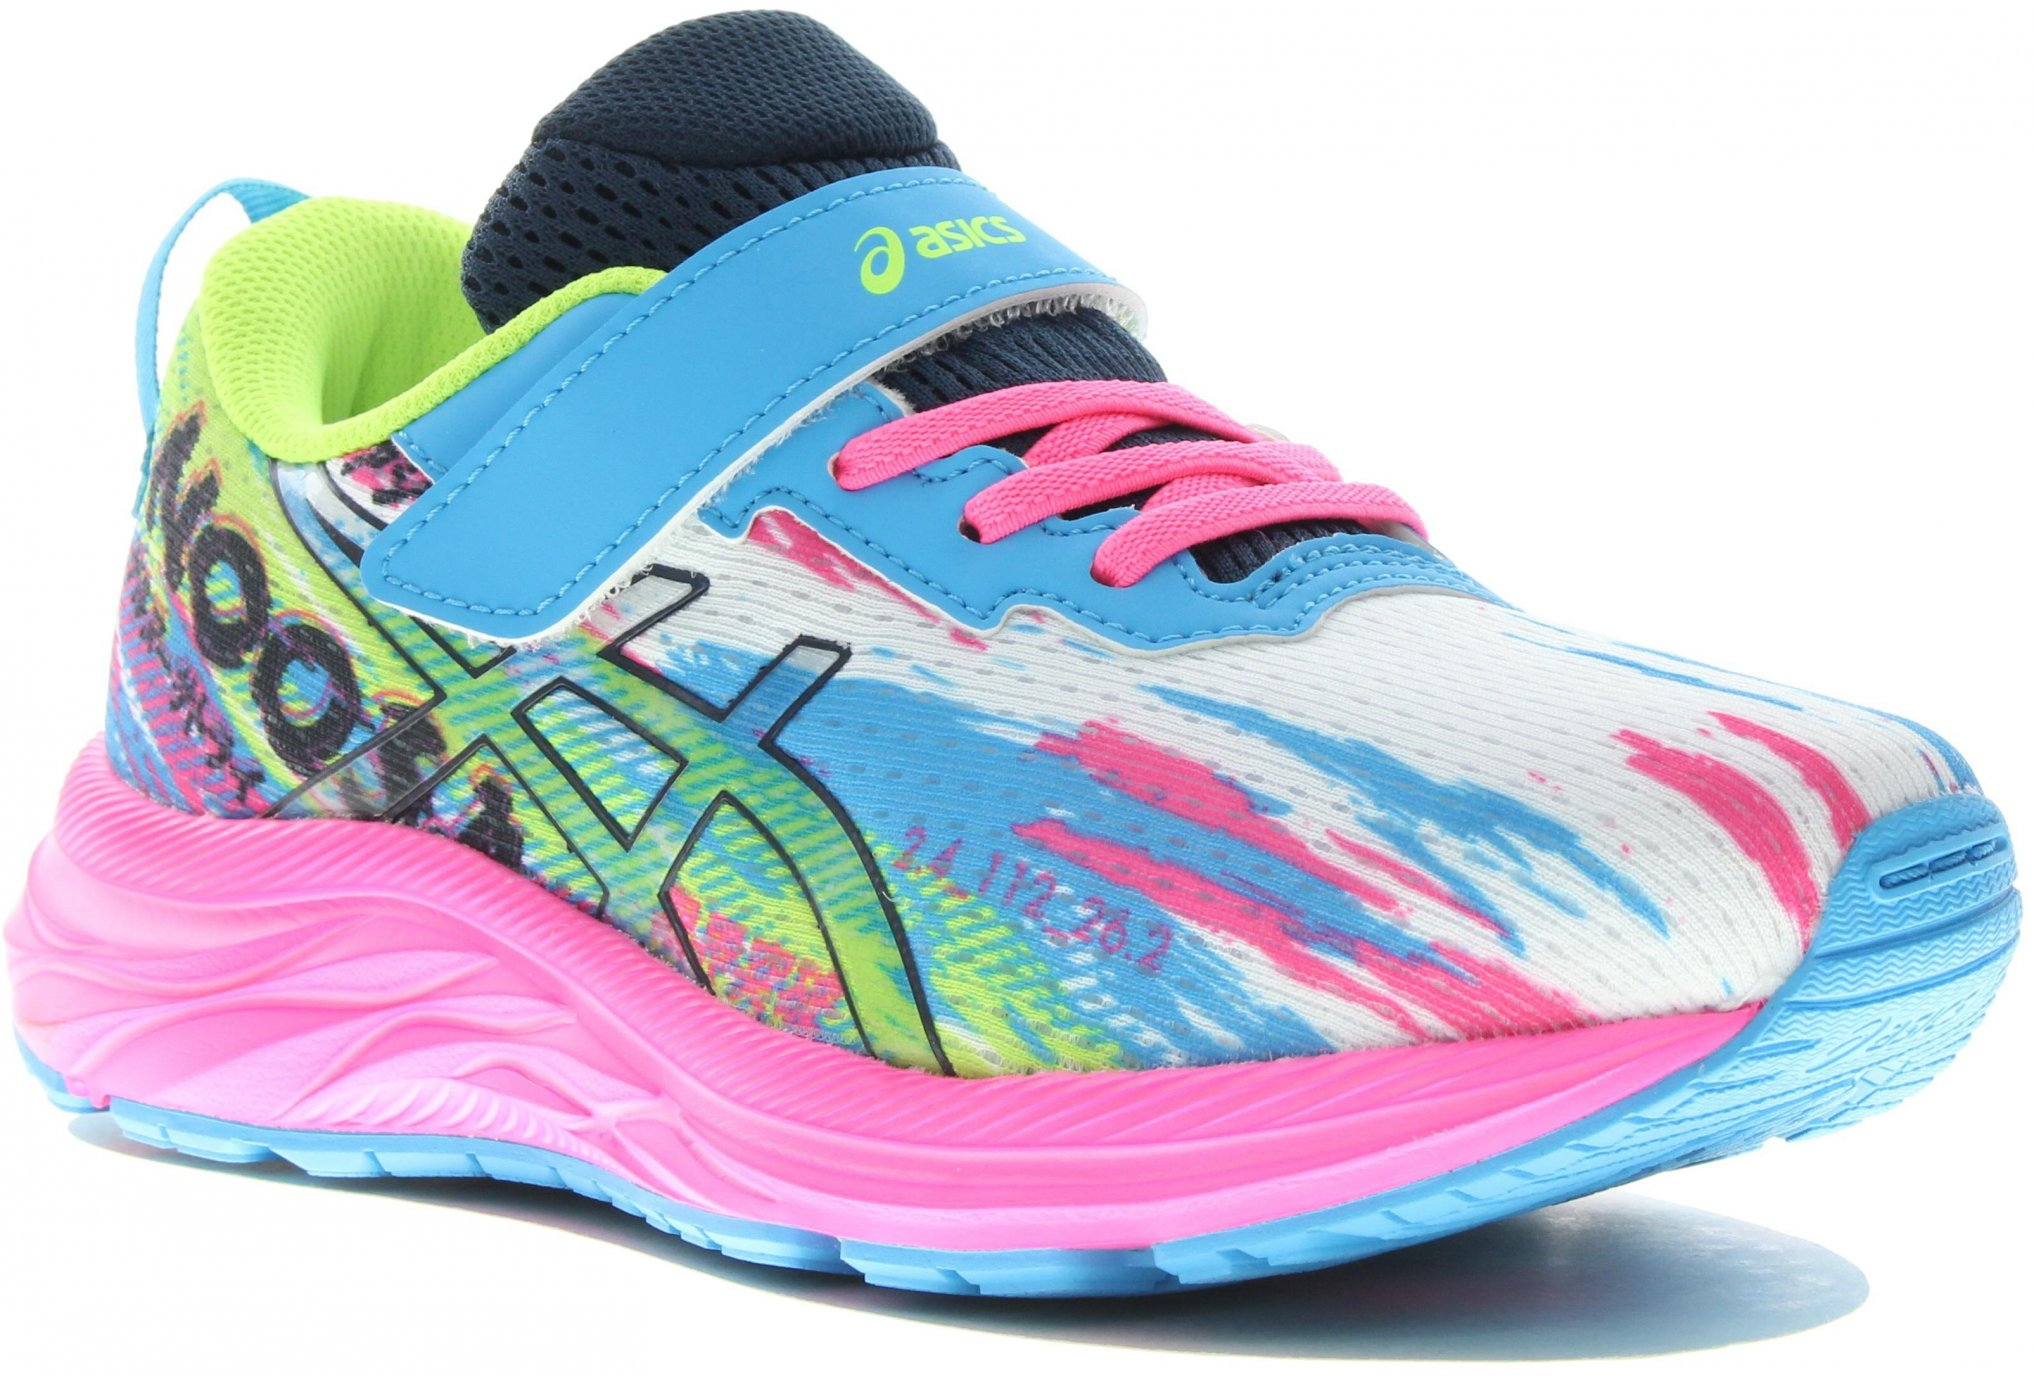 Asics Pre Noosa Tri 13 Fille Chaussures running femme